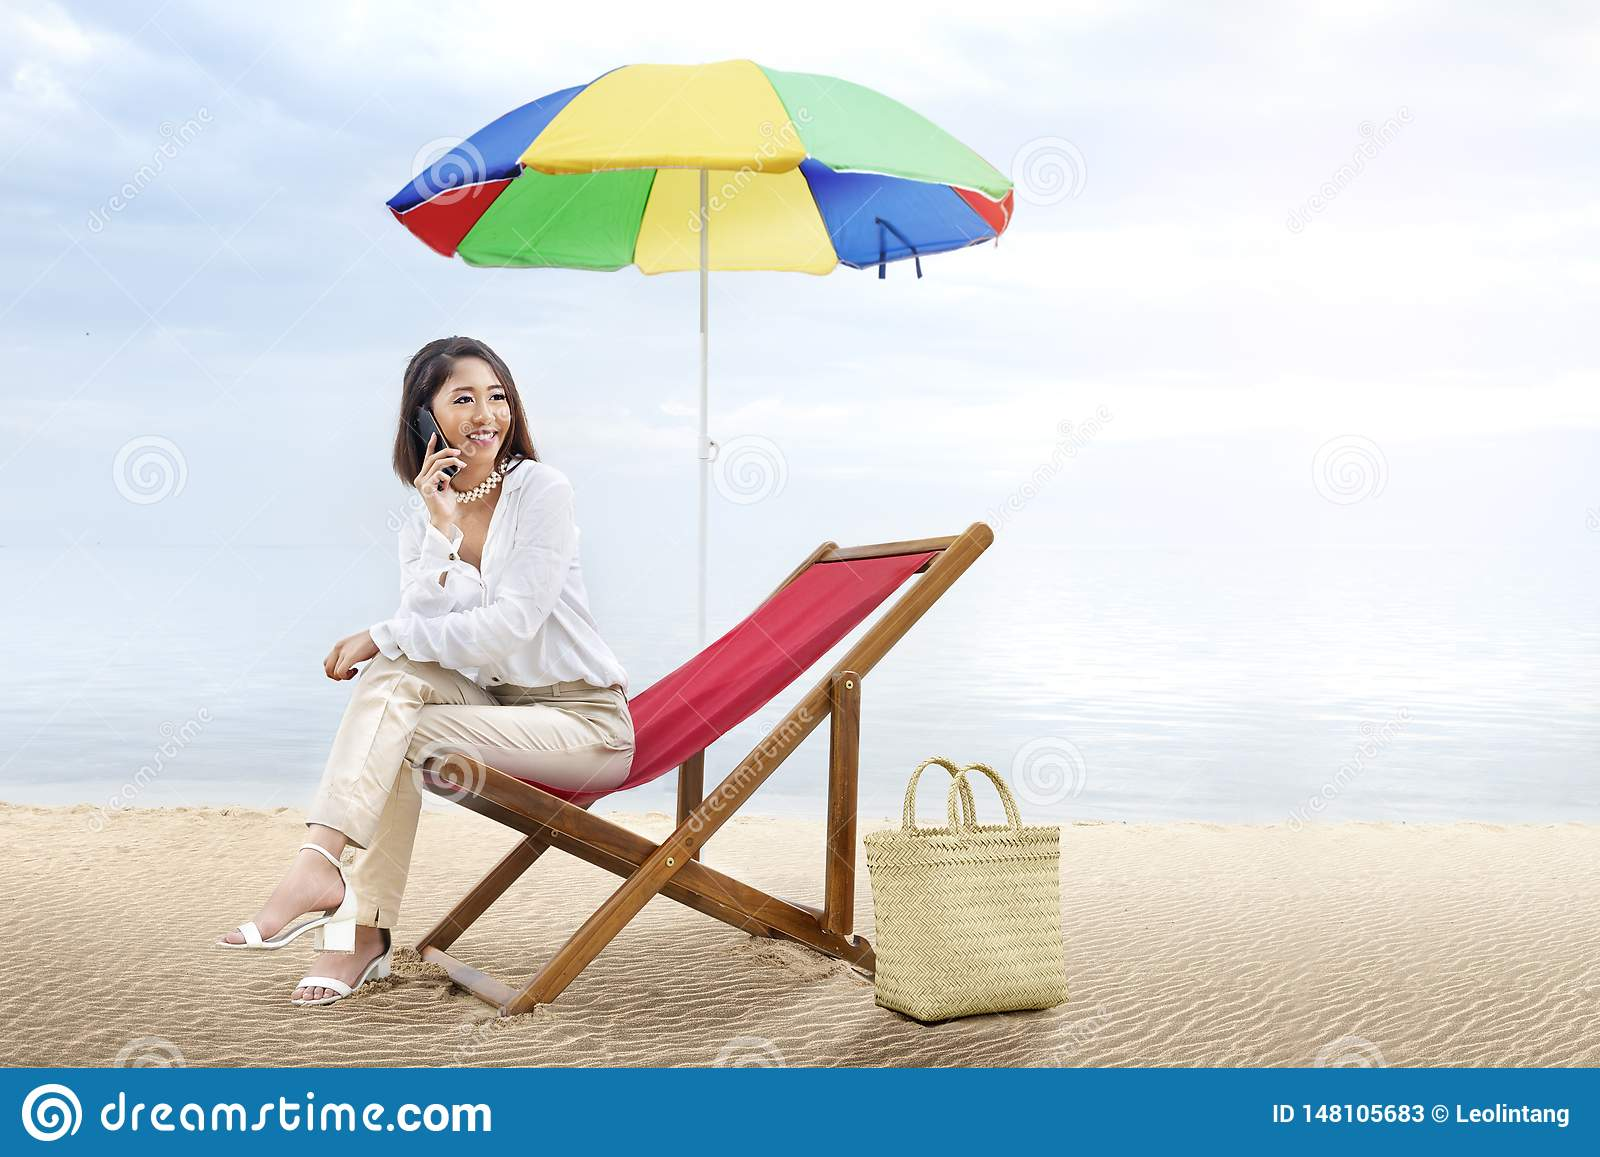 147 Person Sitting Beach Chair Umbrella Photos Free Royalty Free Stock Photos From Dreamstime